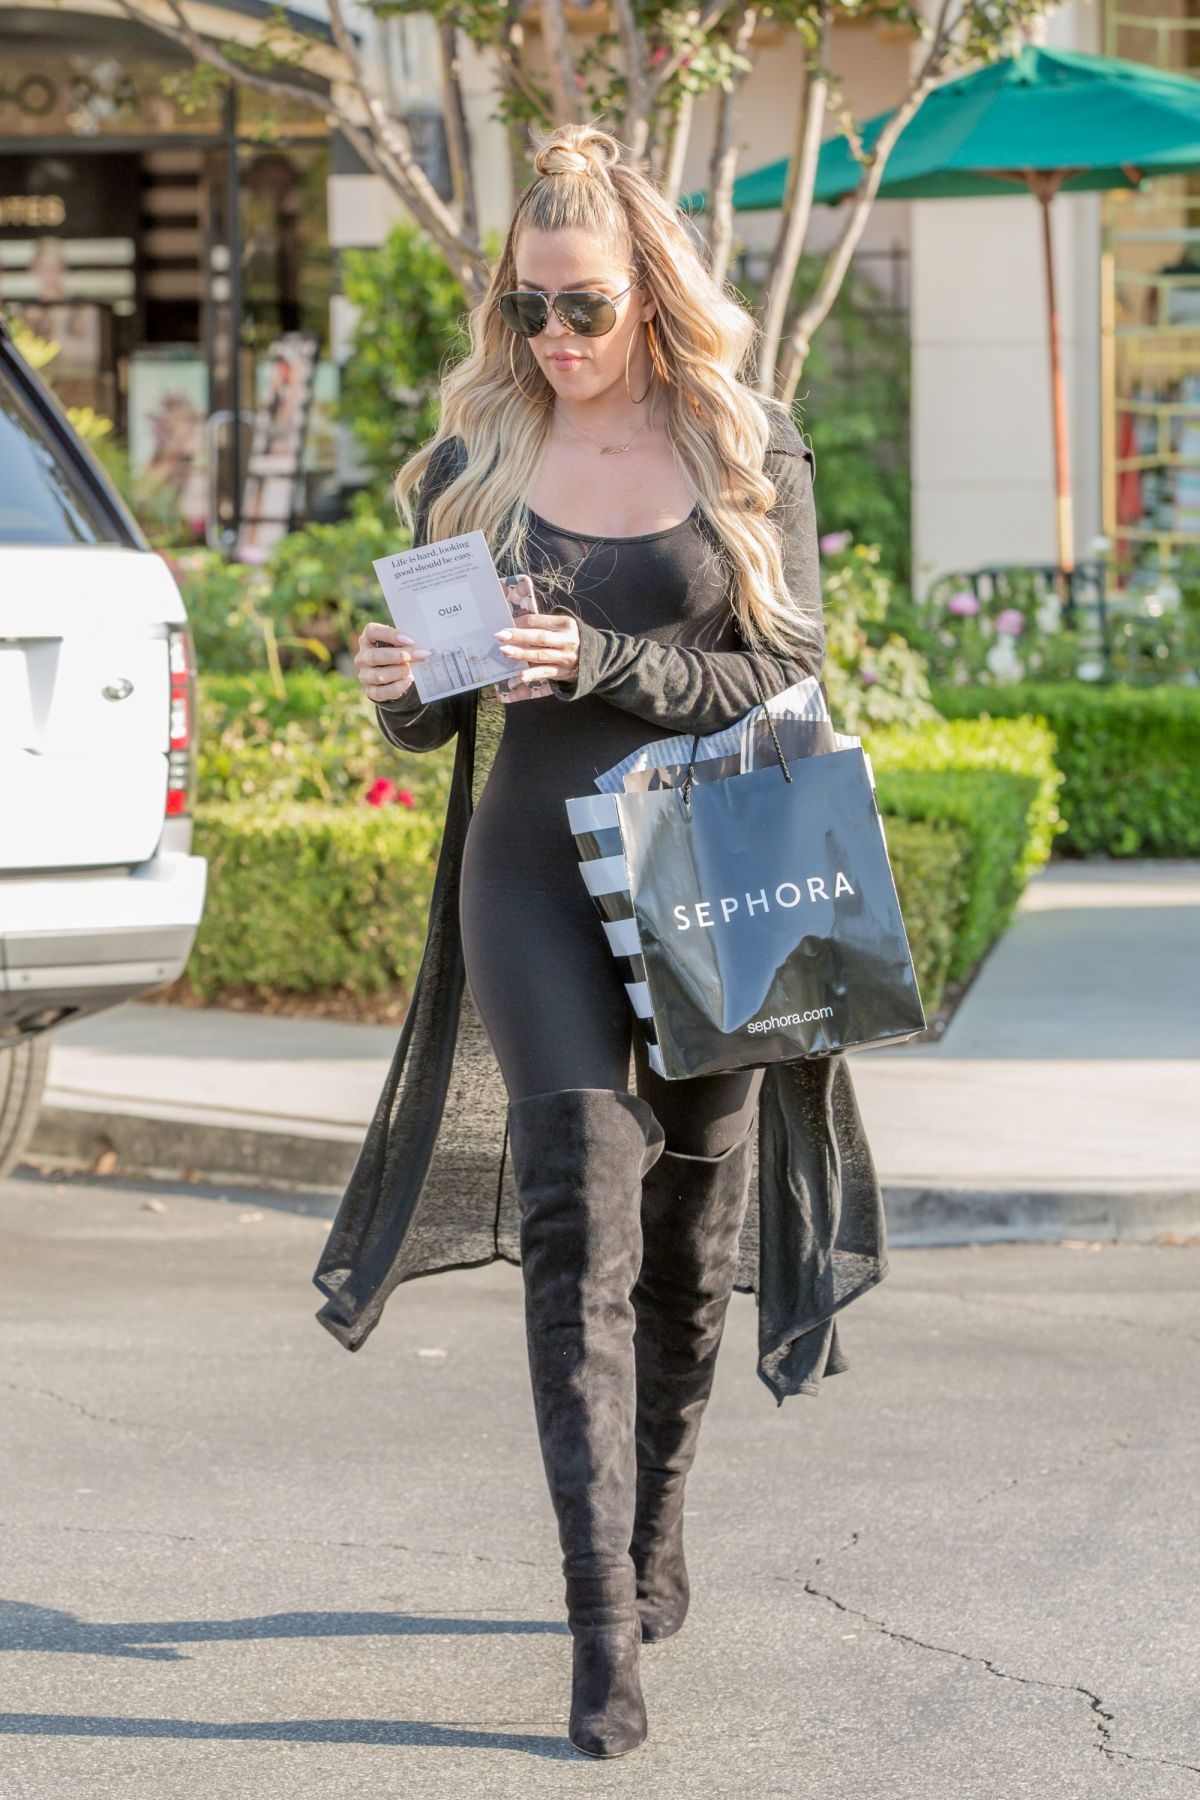 b71a050a8bfd8 Khloe Kardashian Out and About - Celebzz